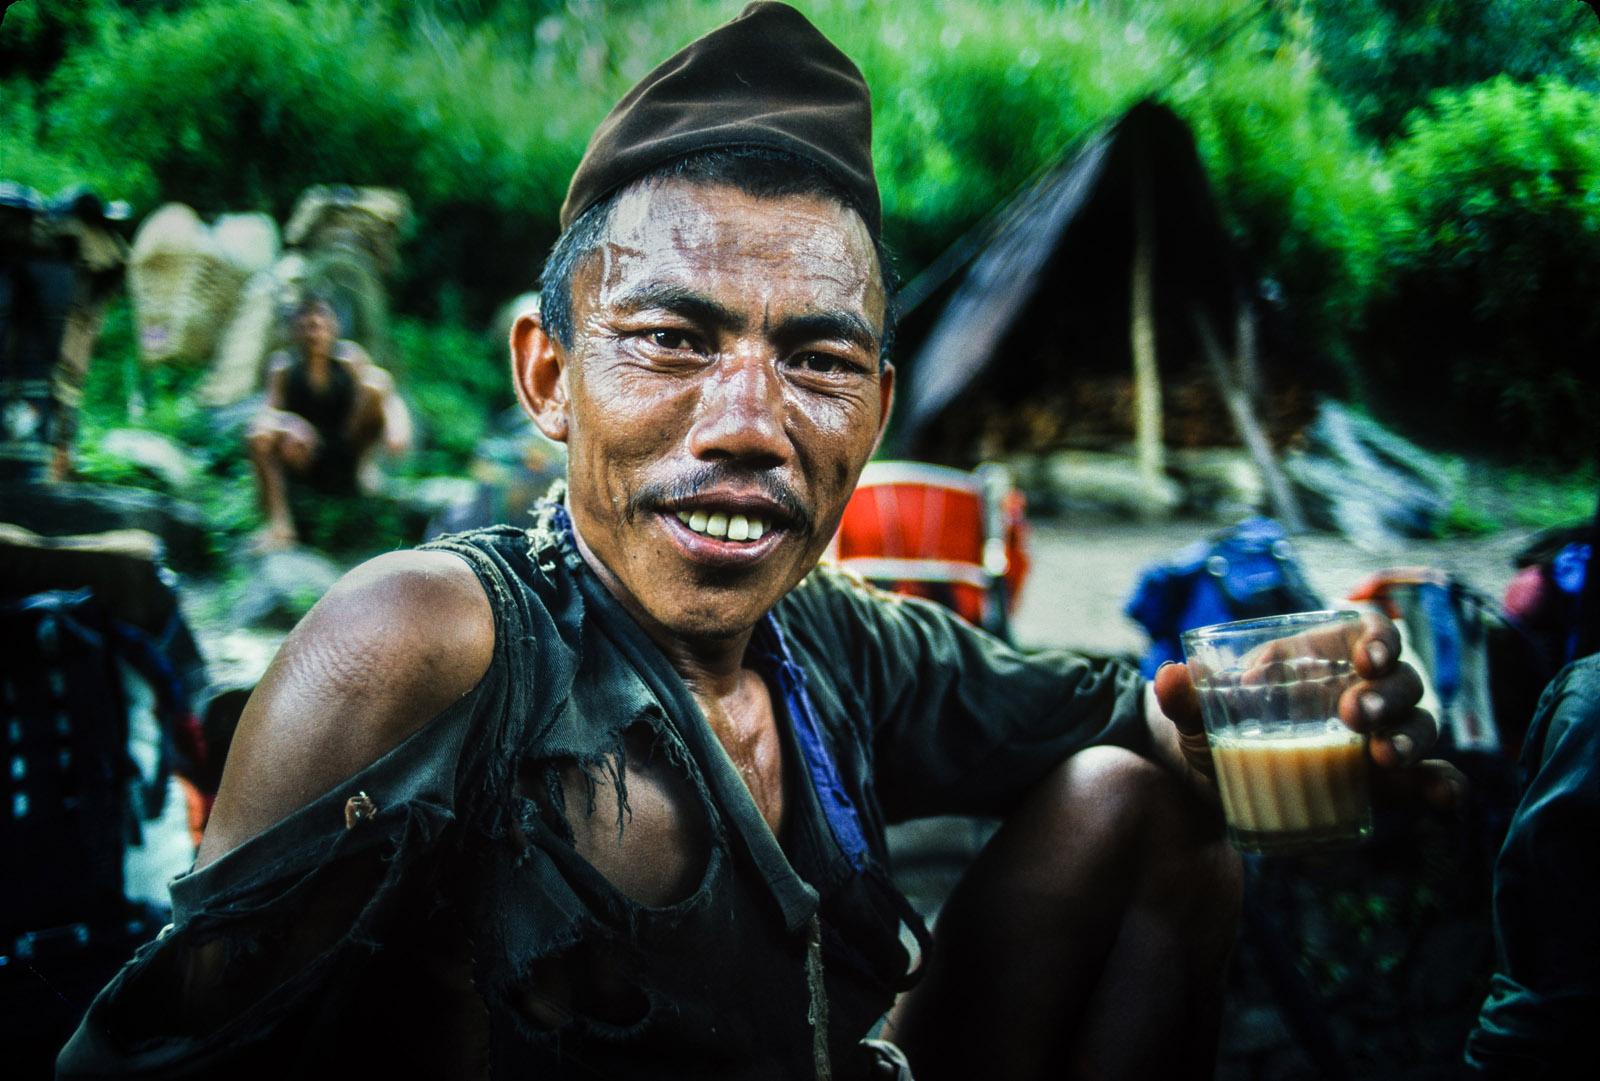 Porter takes a tea break during trek from Kathmandu to Everest base camp, during first Canadian Everest expedition. Nepal. 1982.